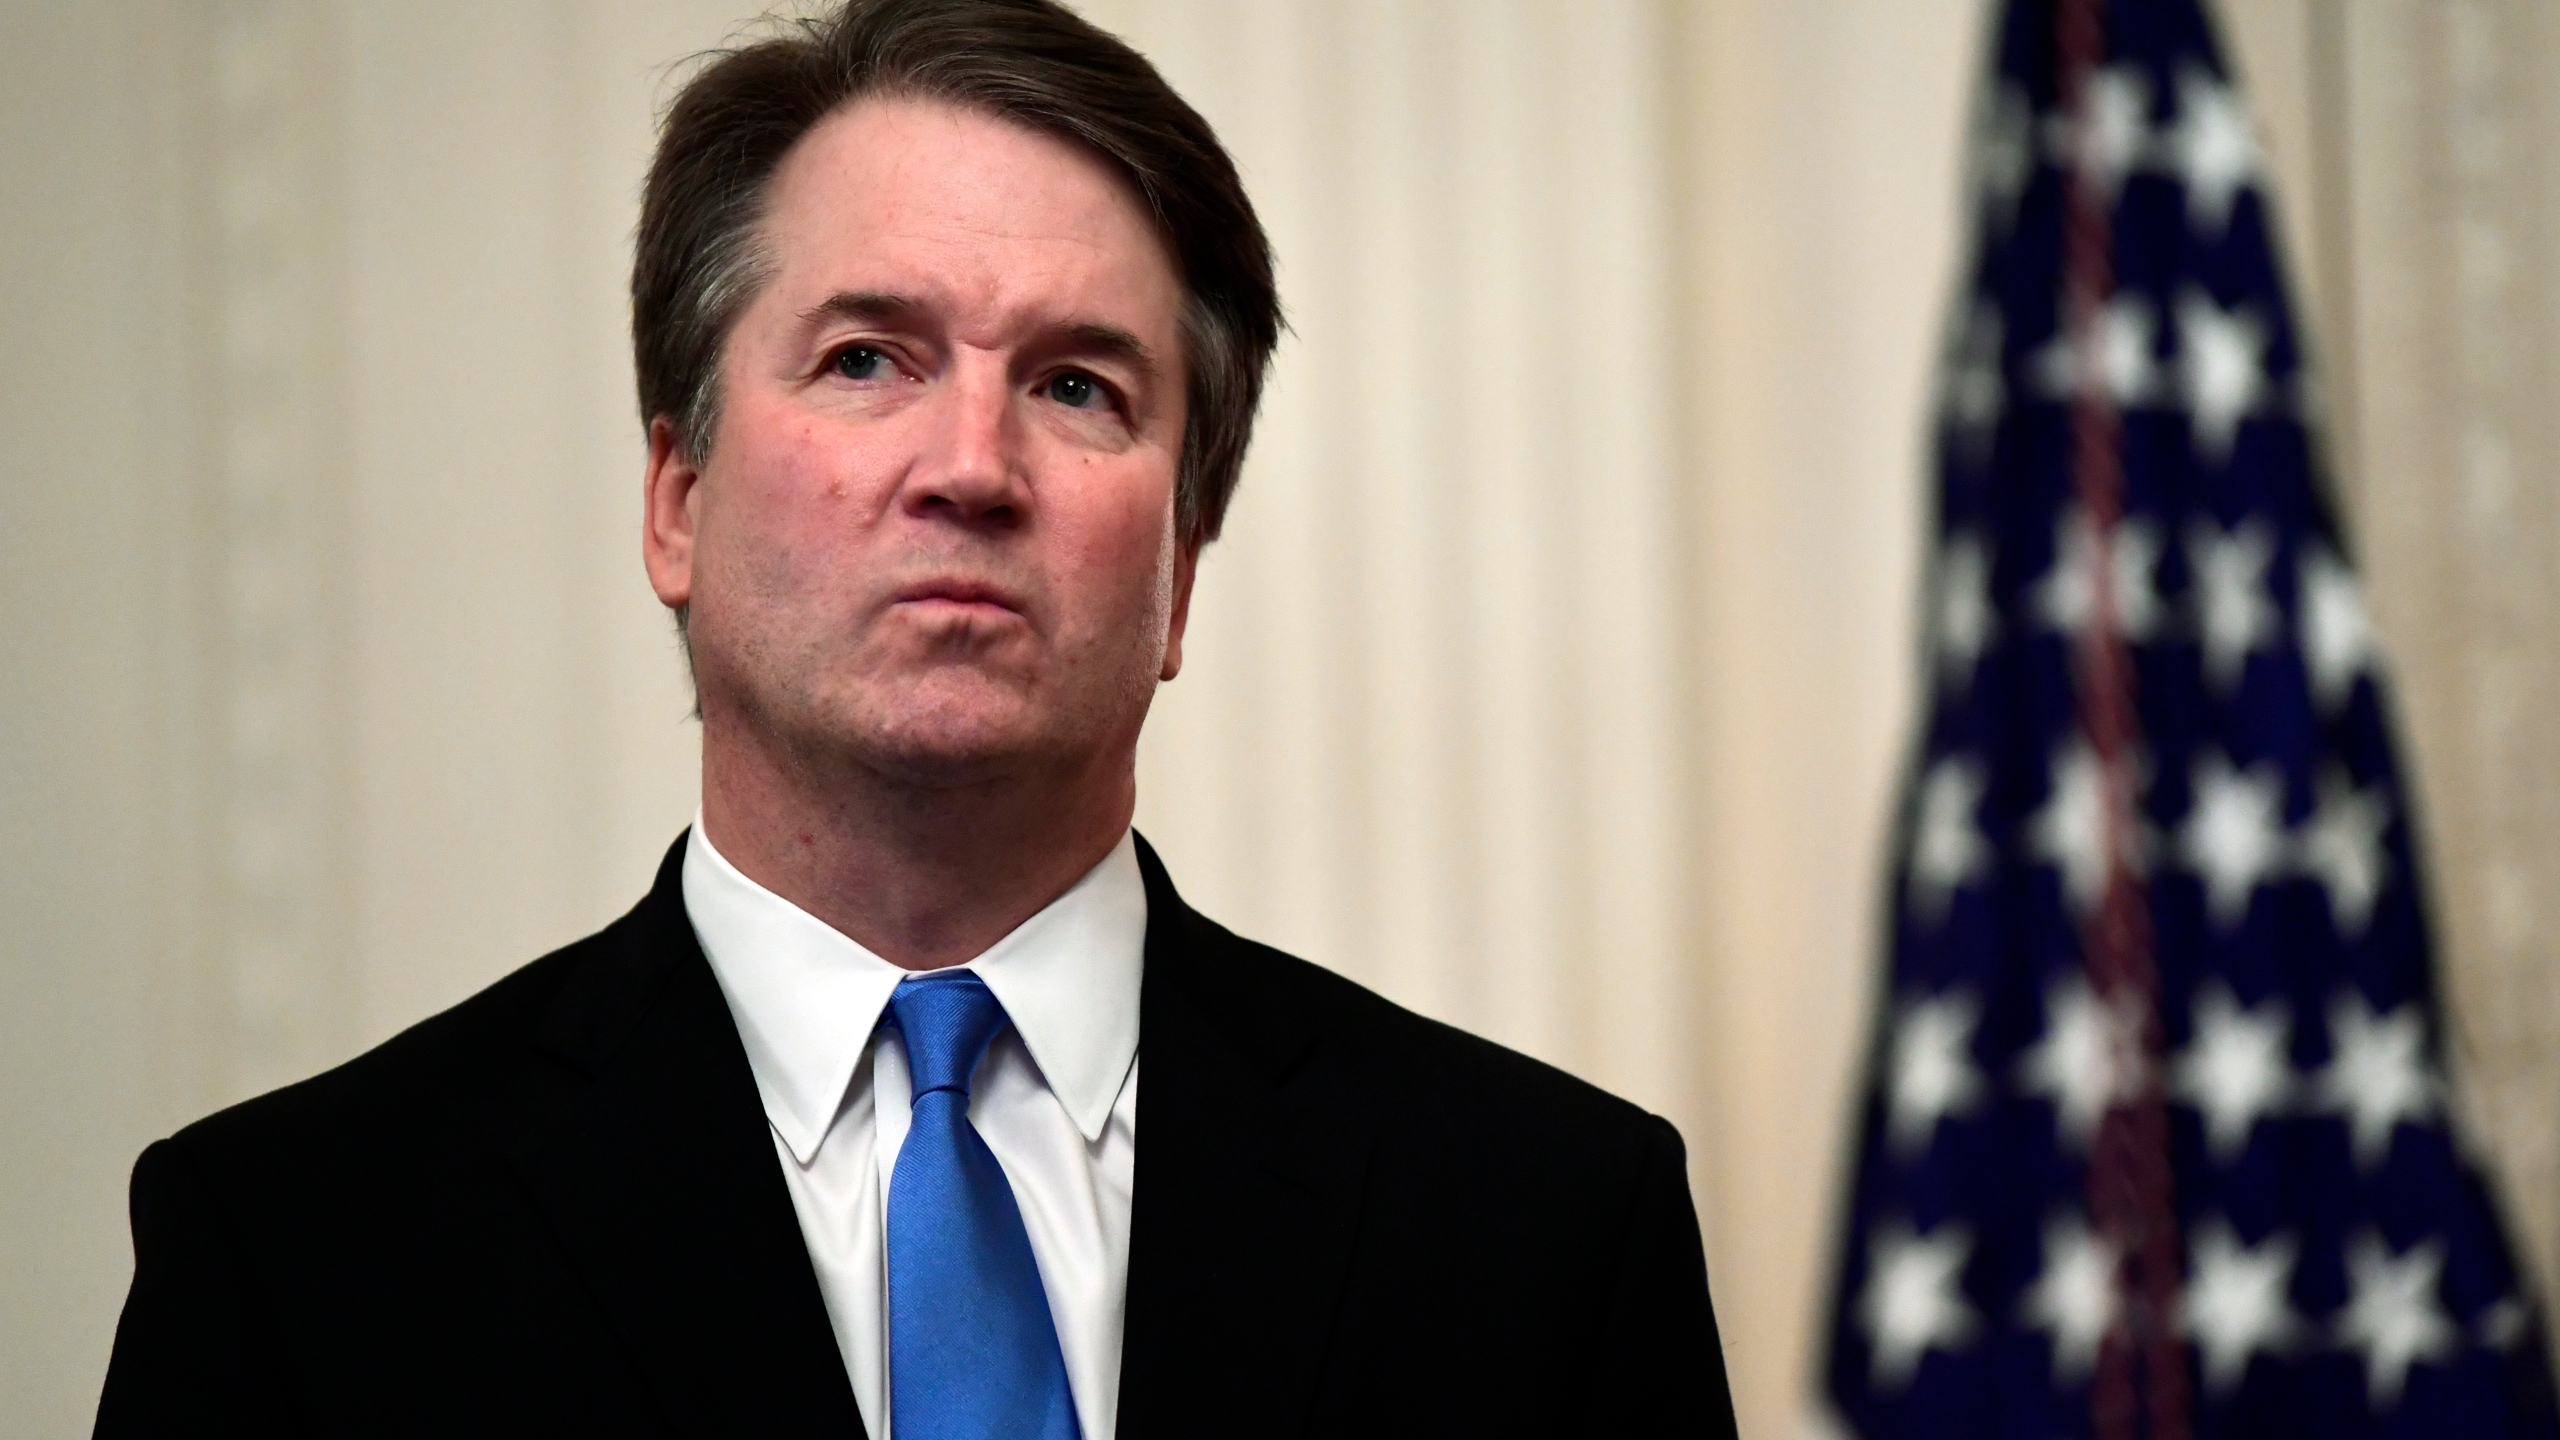 Supreme_Court_Kavanaugh_Anonymous_Donors_86514-159532.jpg86501034